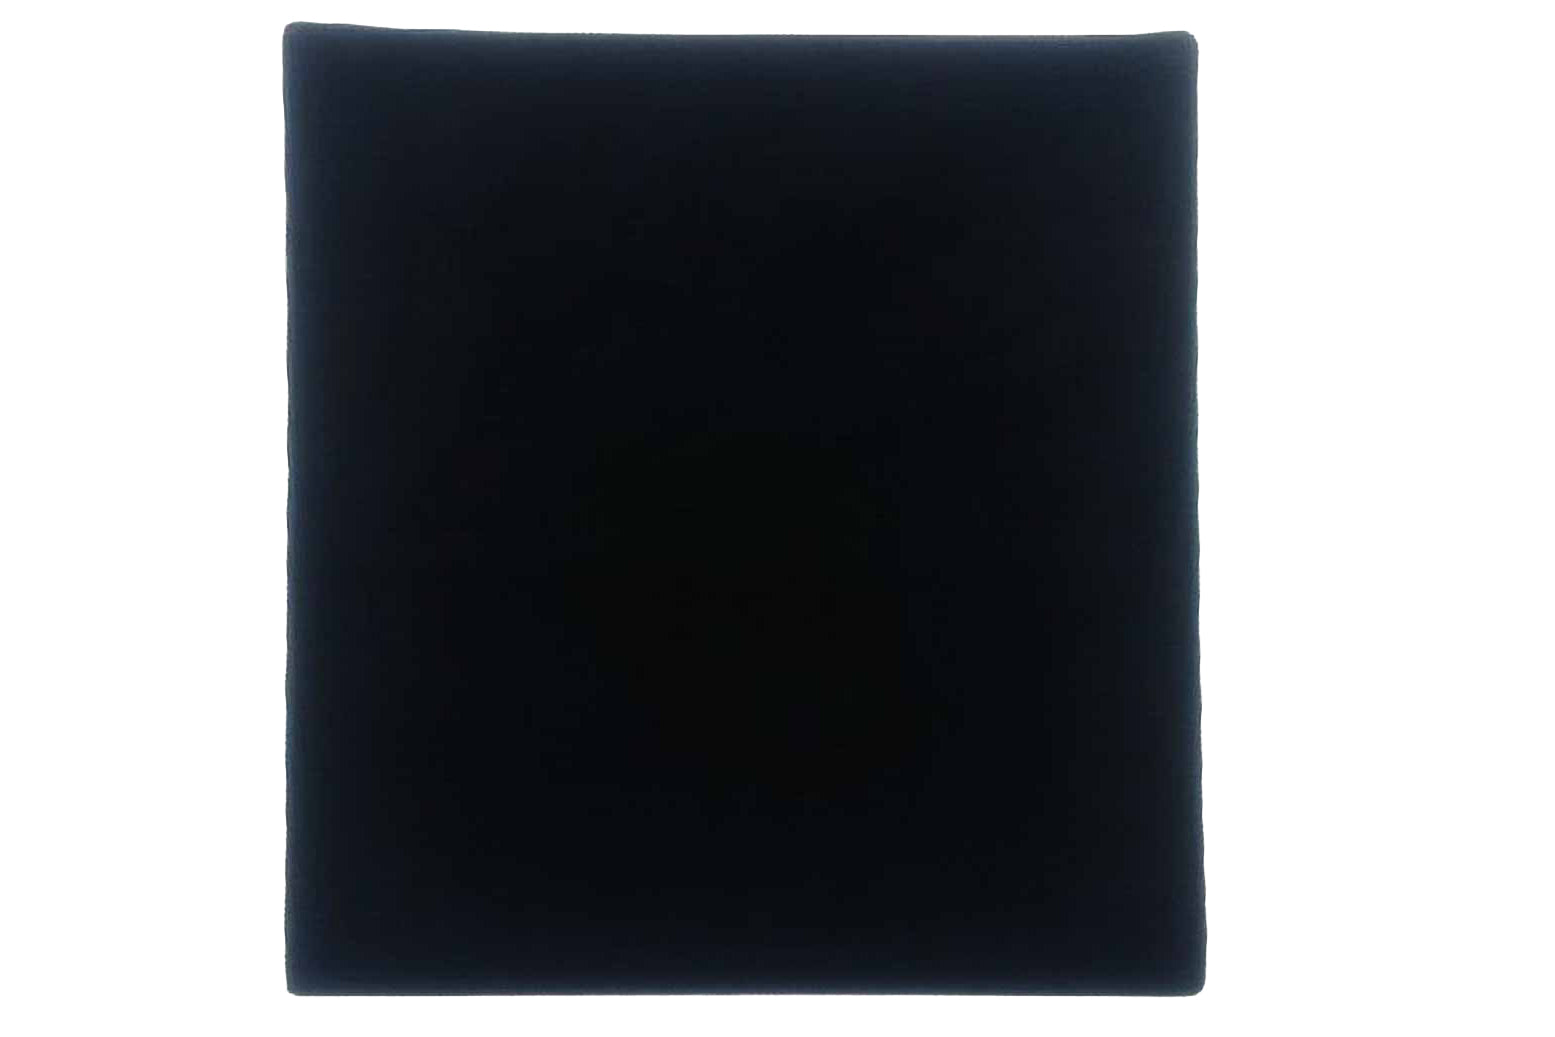 square mat for living area in camper vans in black automotive carpet